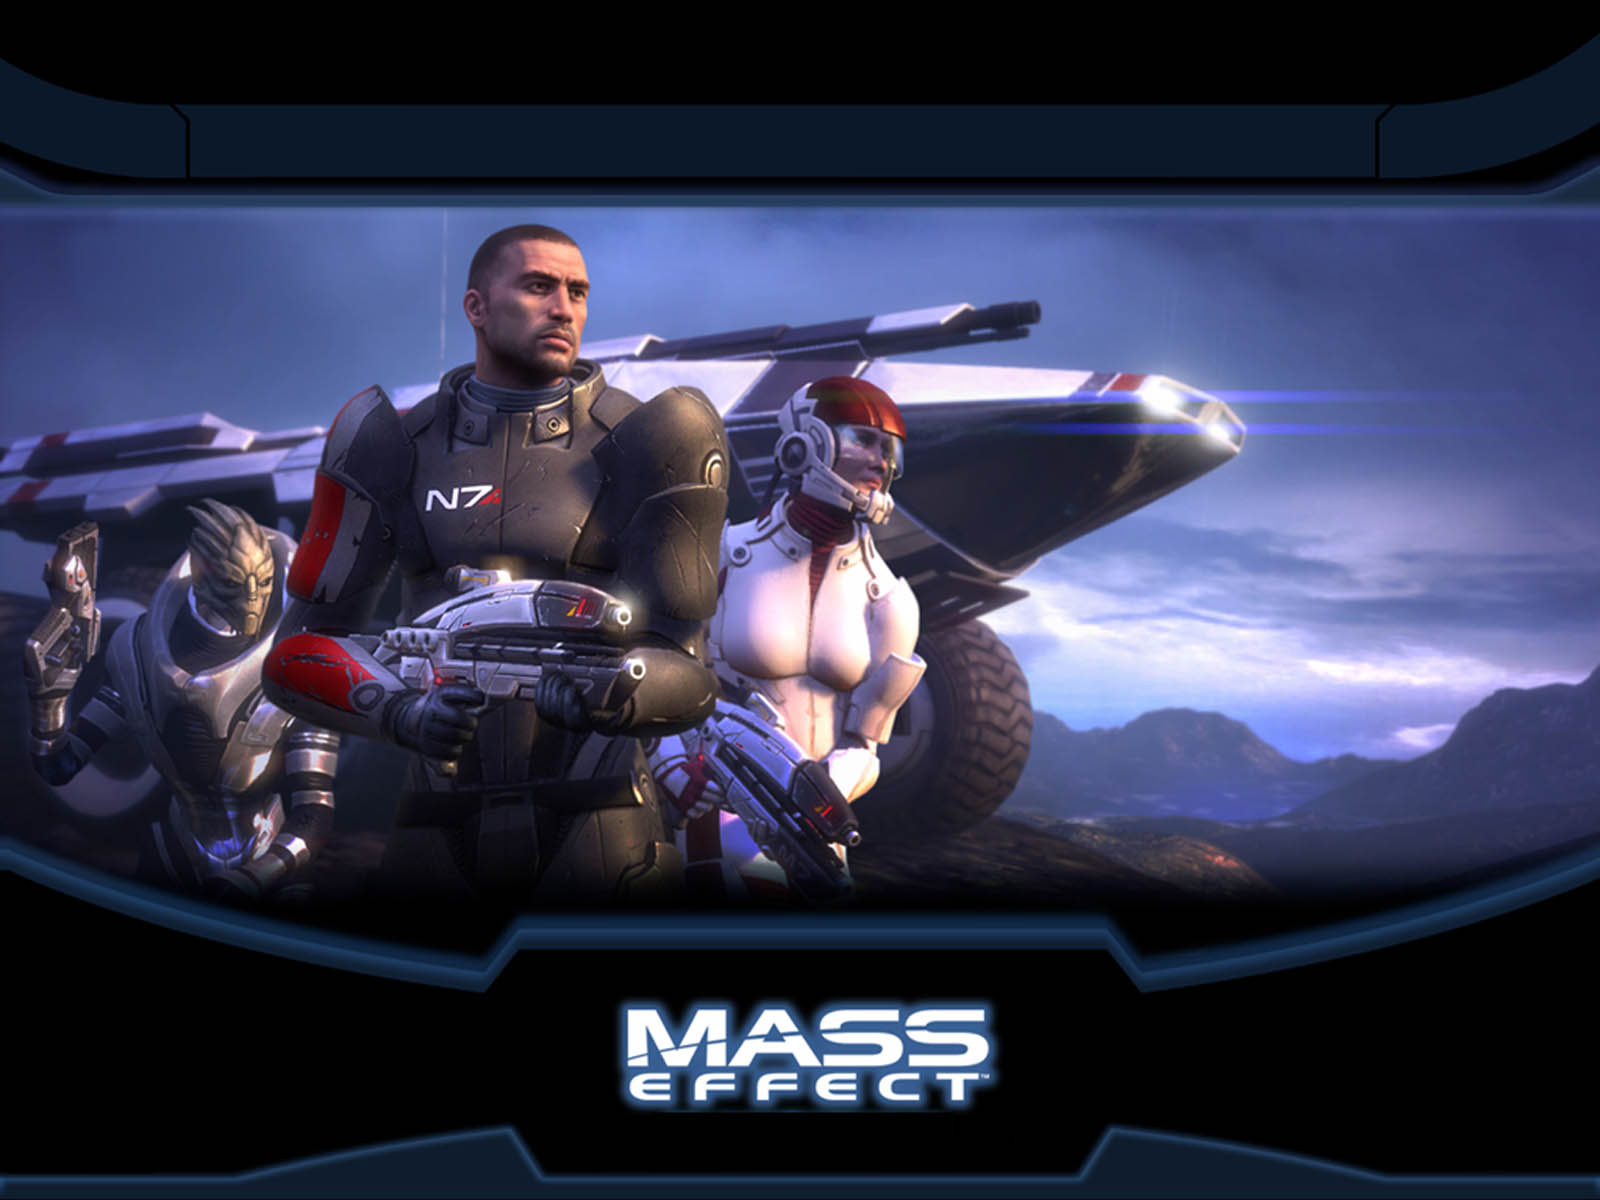 Hd Car Wallpapers For Laptop Free Download Wallpapers Mass Effect